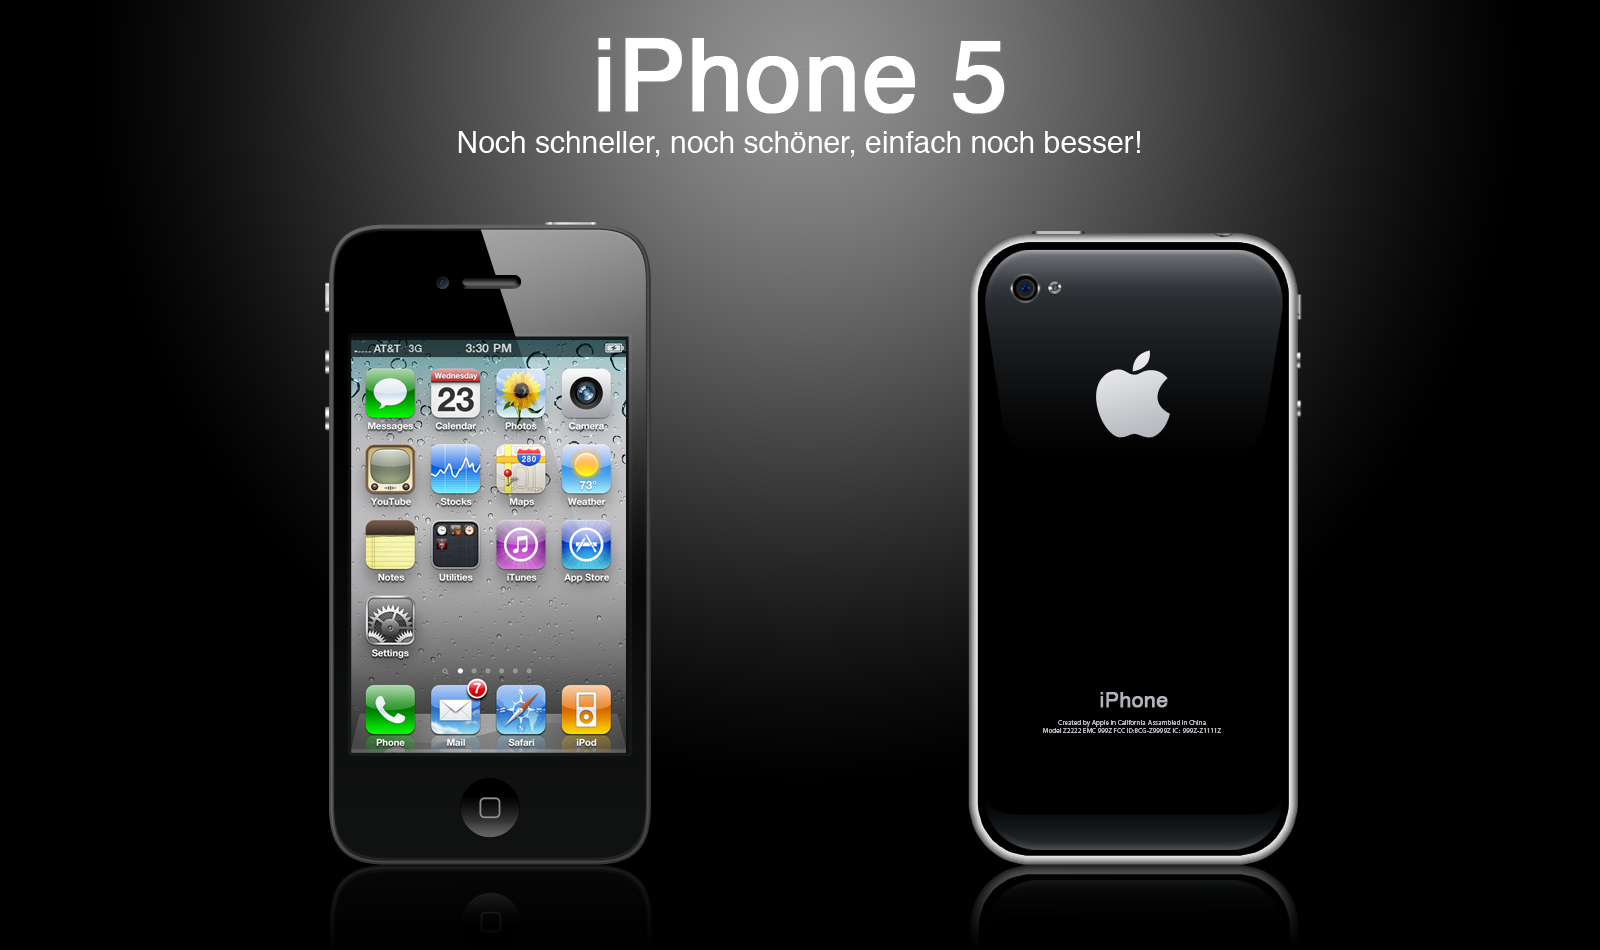 wallpapers if iPhone 5 and review ~ Apple